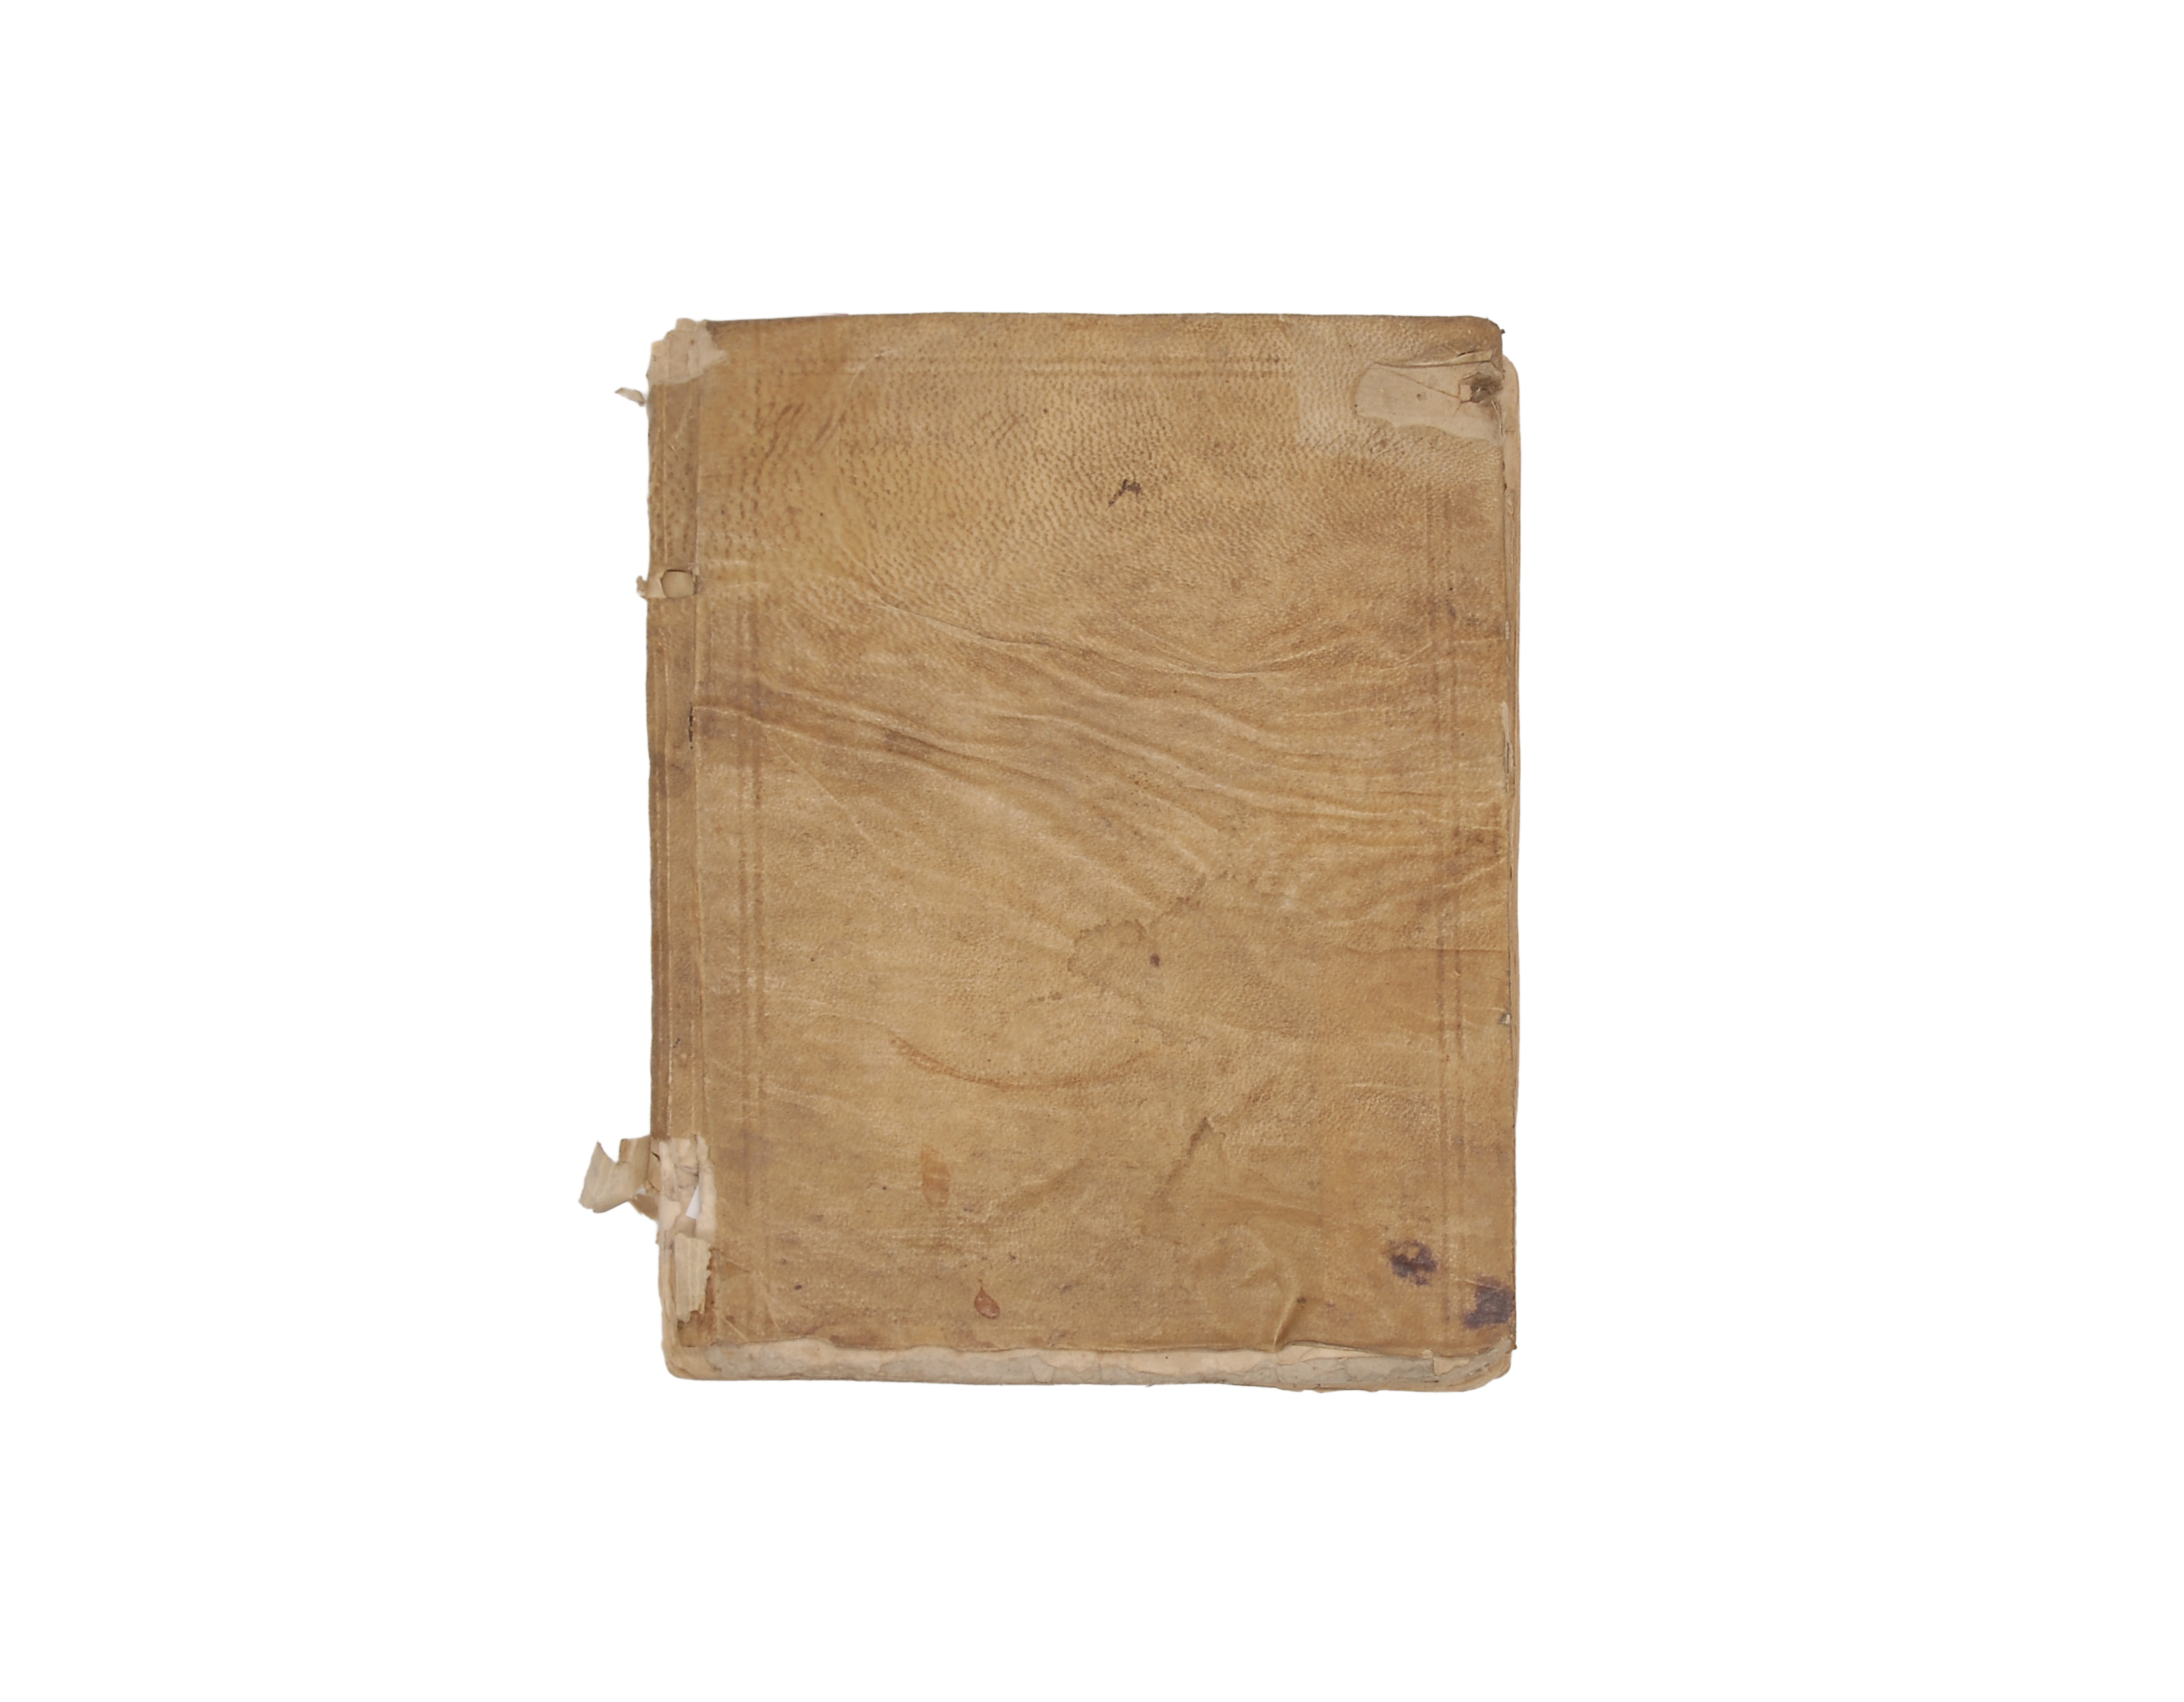 LILLY, William, PARTRIDGE, John, after]. ENGLISH ASTROLOGER: LILLY, William, PARTRIDGE,